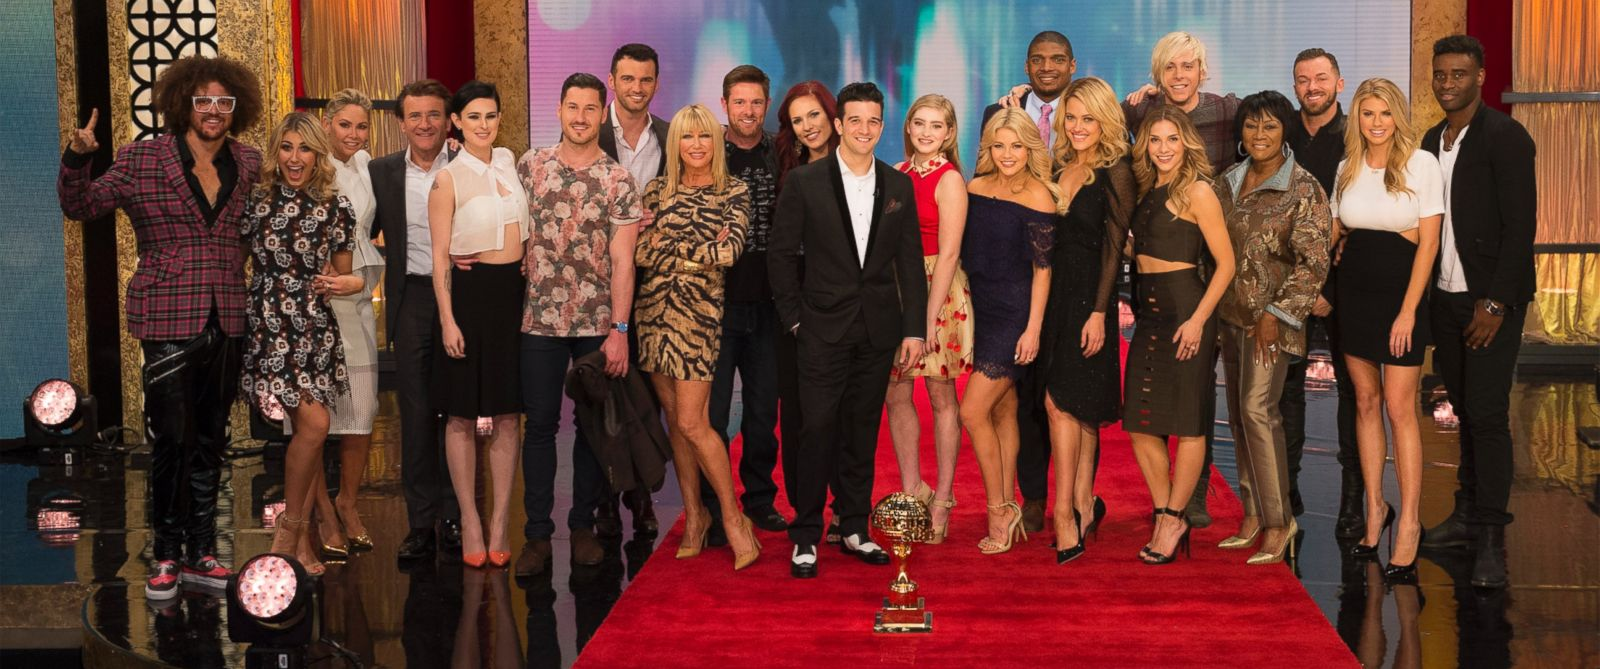 """PHOTO: The star-studded celebrity cast for season 20 of """"Dancing With the Stars"""" was revealed today on """"Good Morning America."""""""